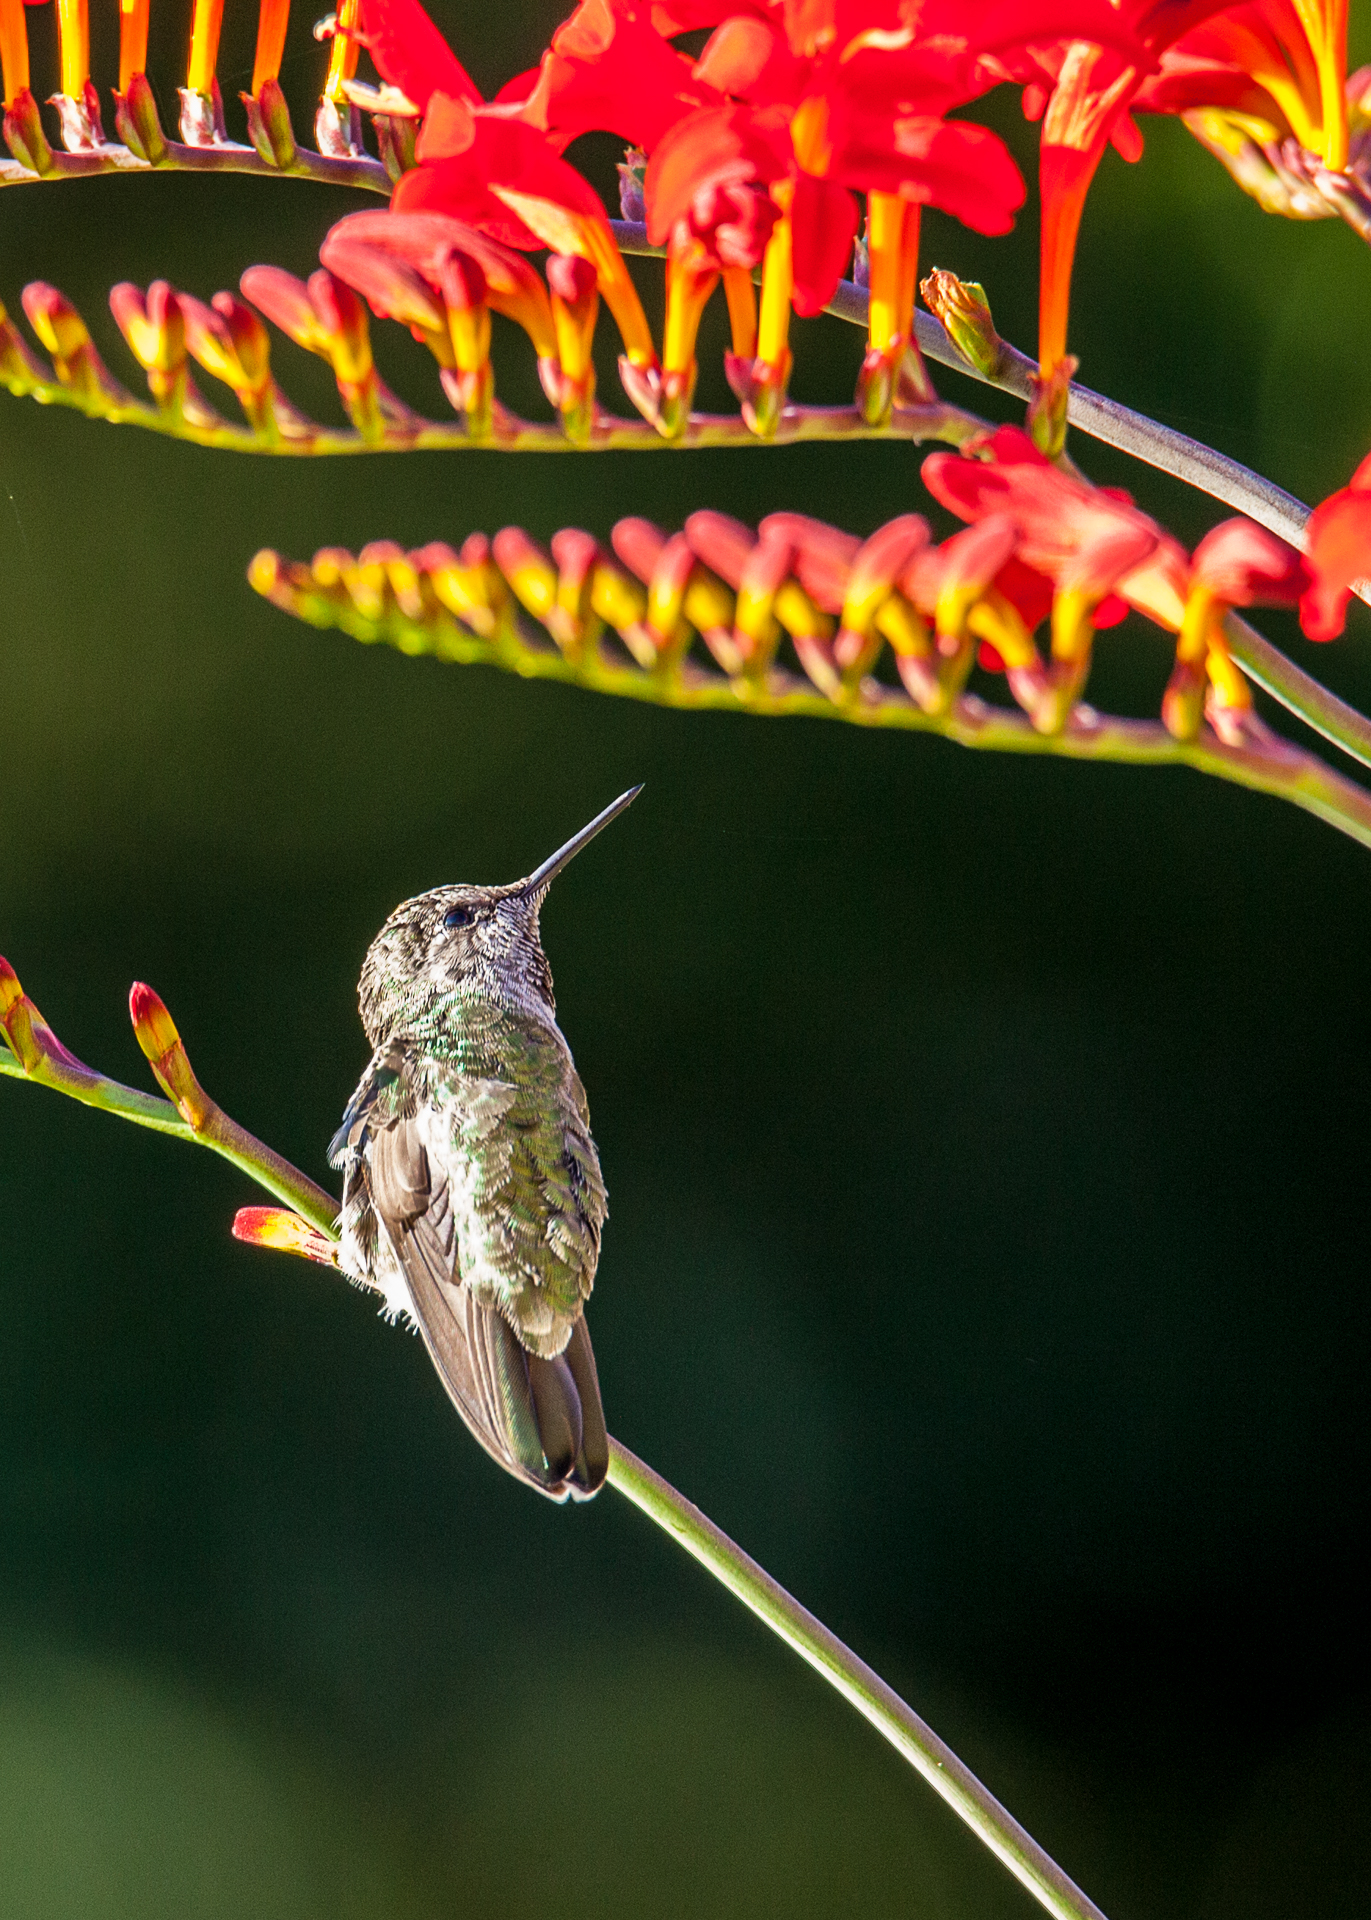 hummingbird_on_branch